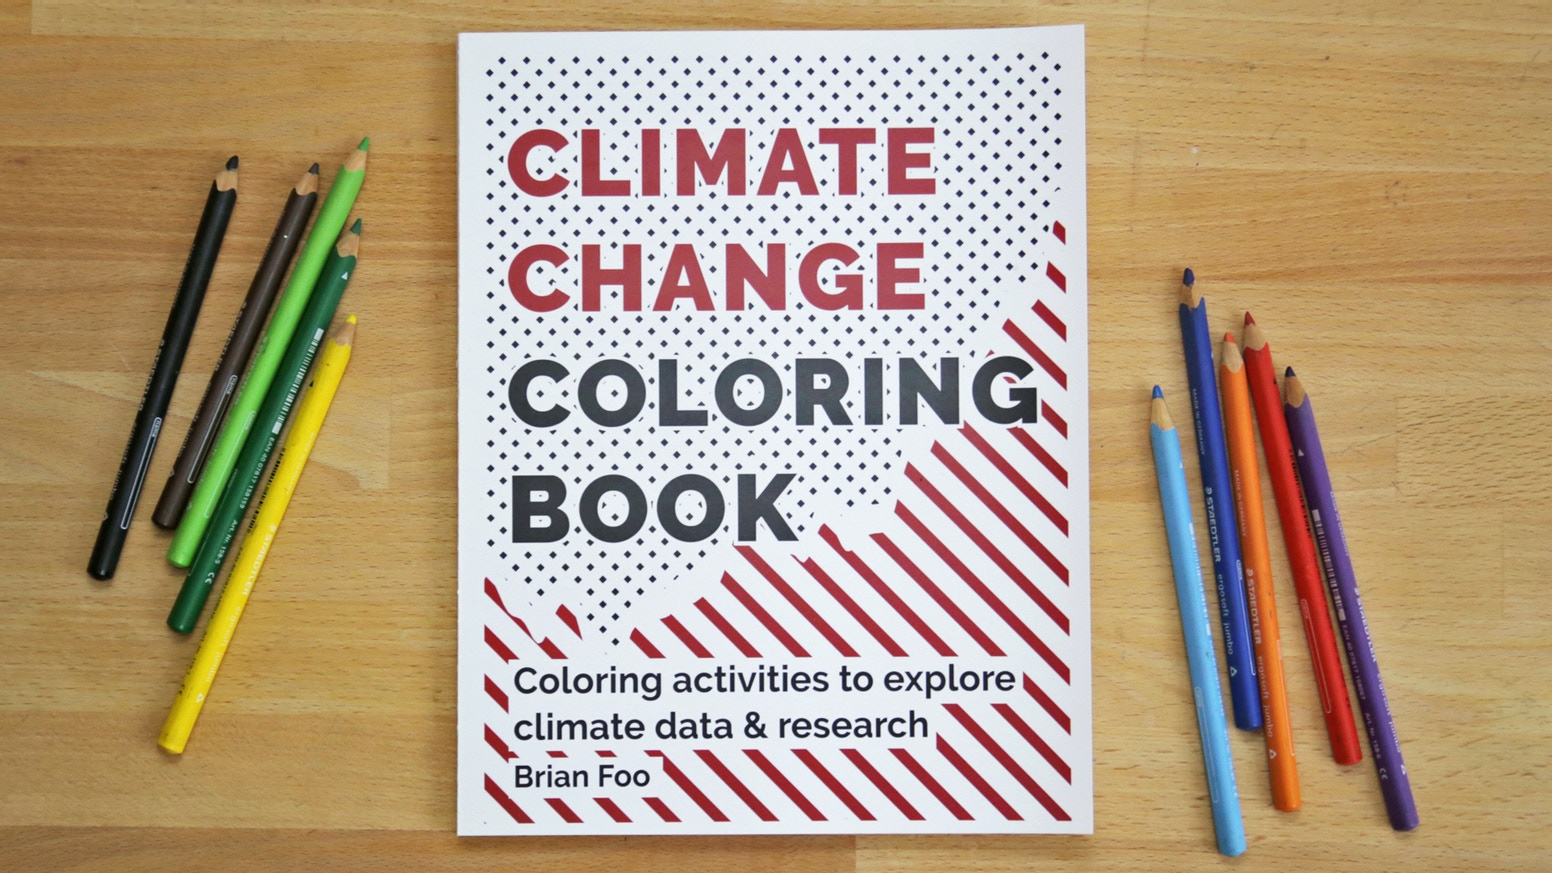 Coloring book html5 - This Book Contains Guided Coloring Activities That Explore Scientific Research And Data Related To Climate Change